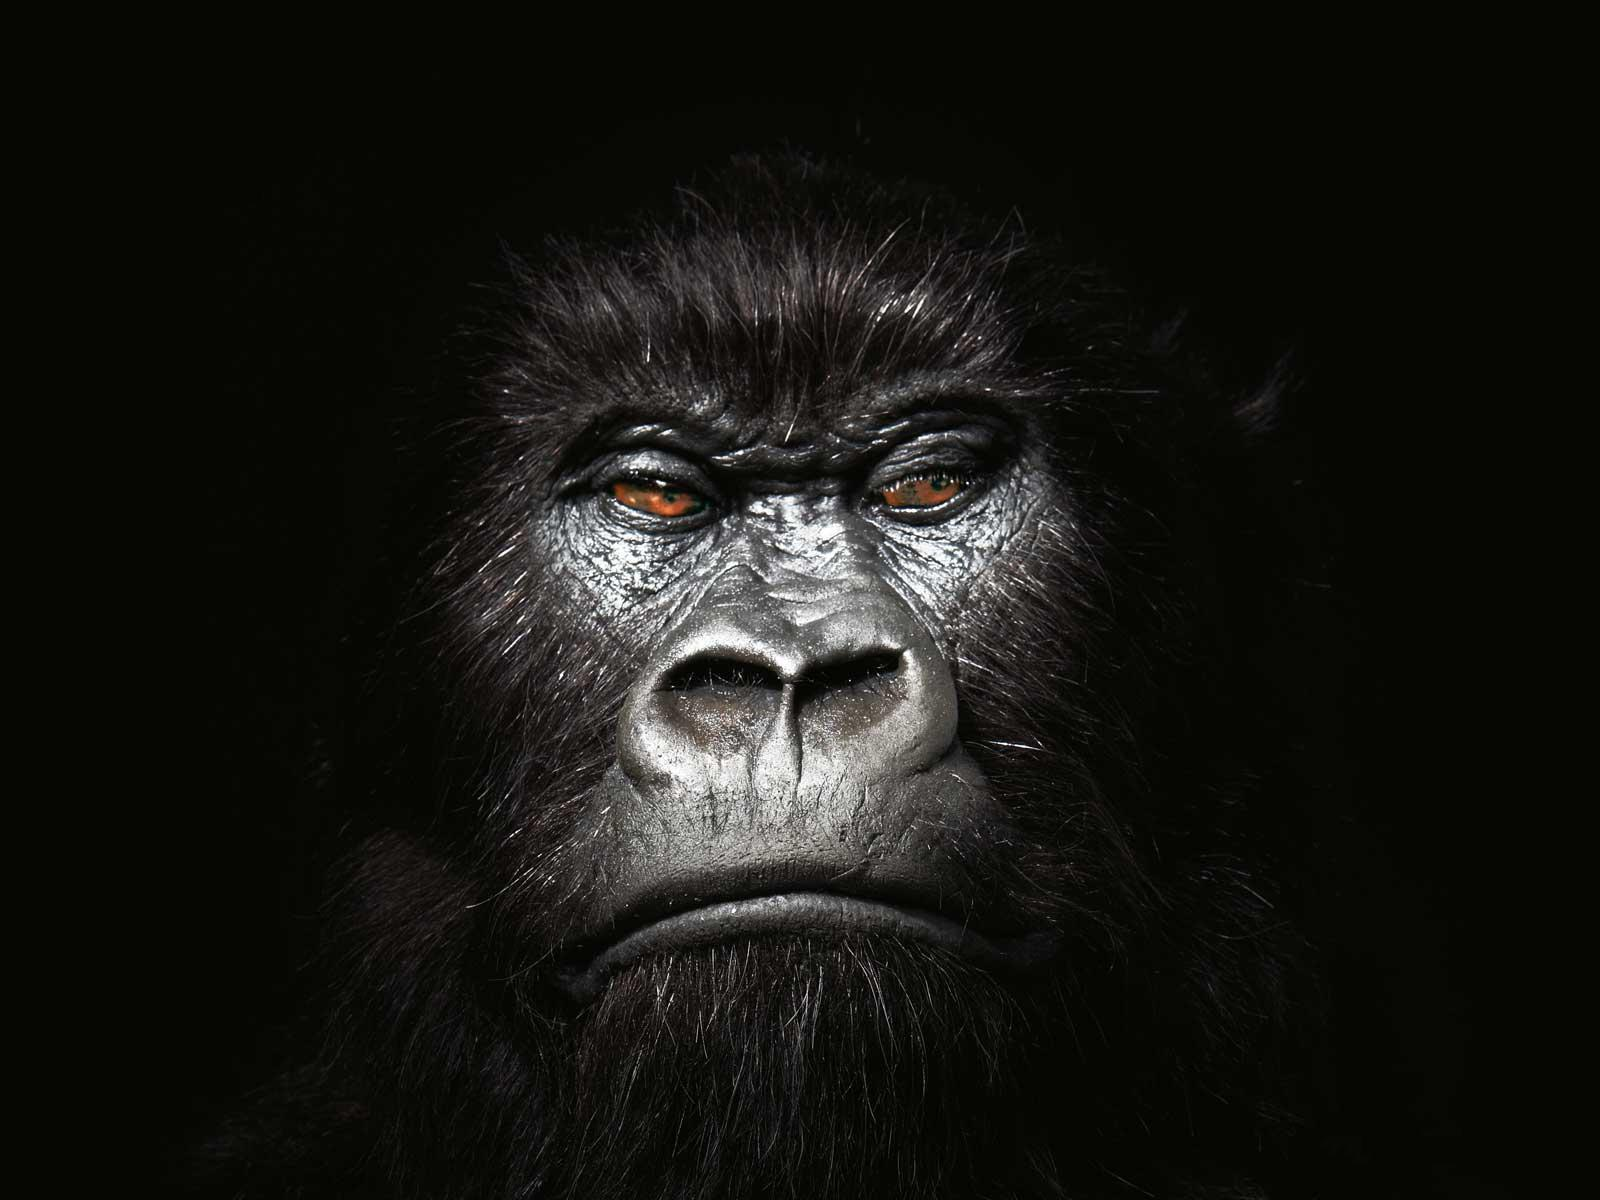 Gorilla background – The Most Popular Picture design on the Internet